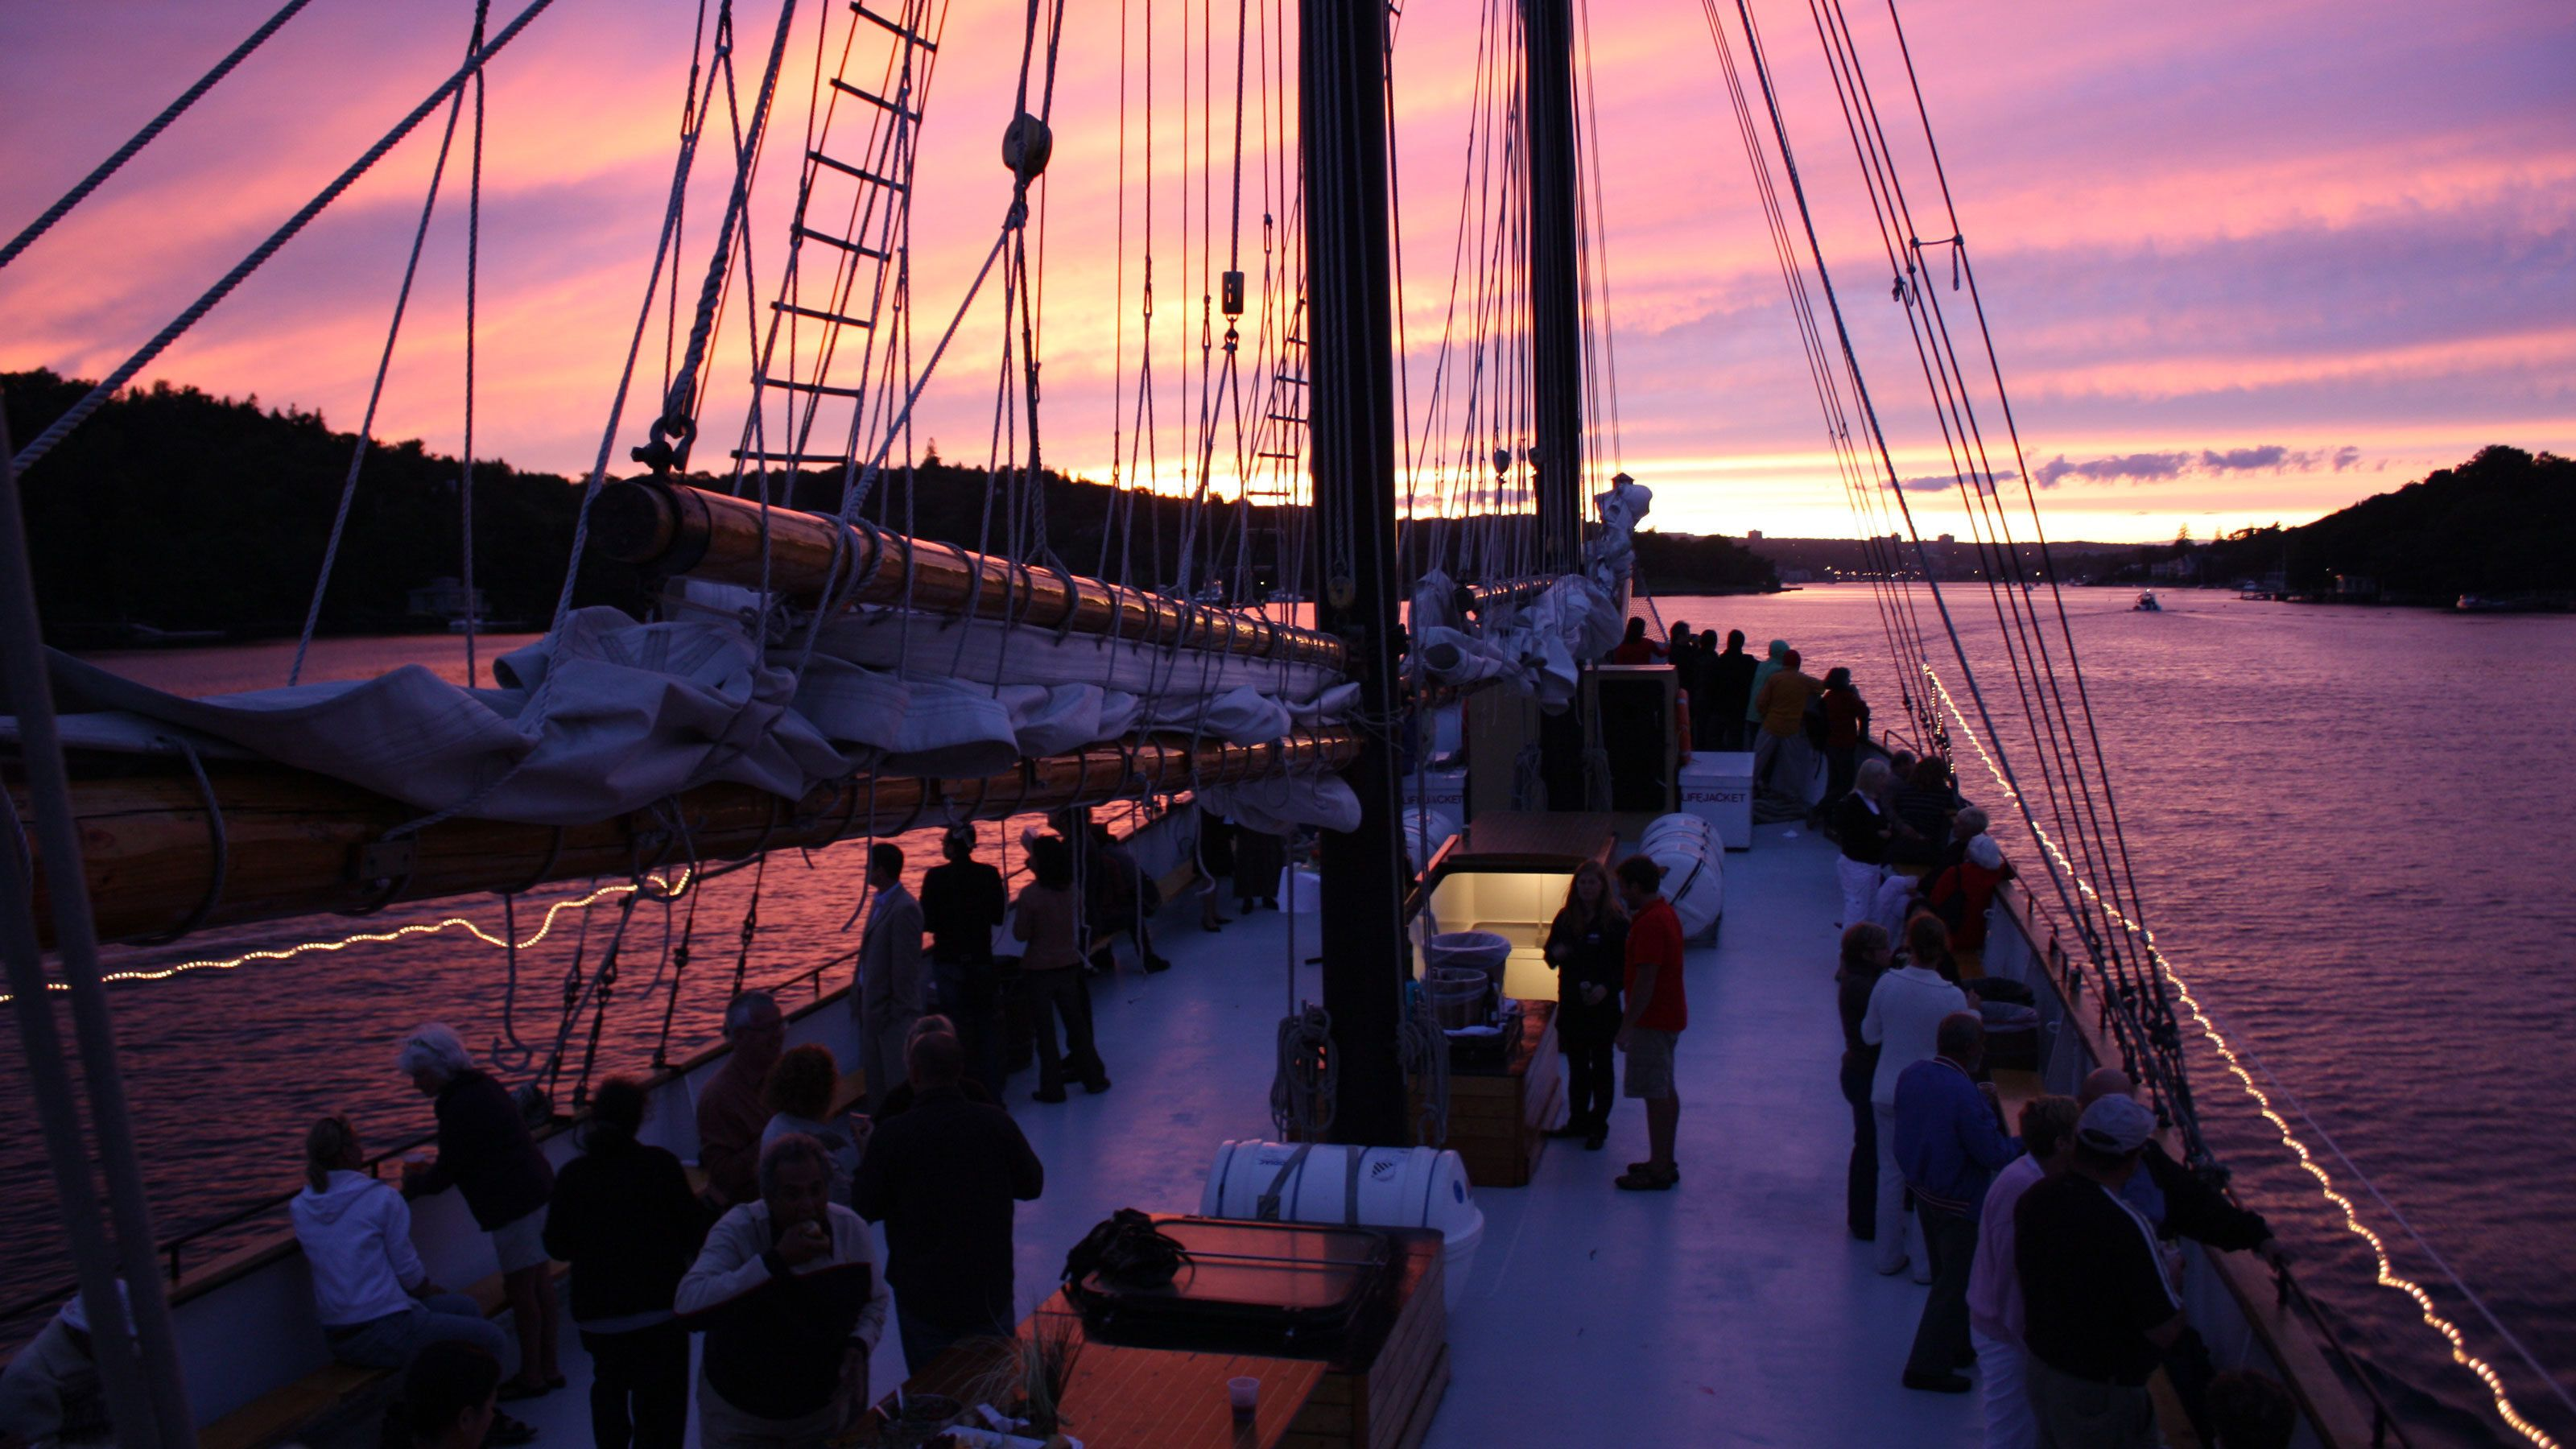 Tall Ship Silva deck with people at dusk